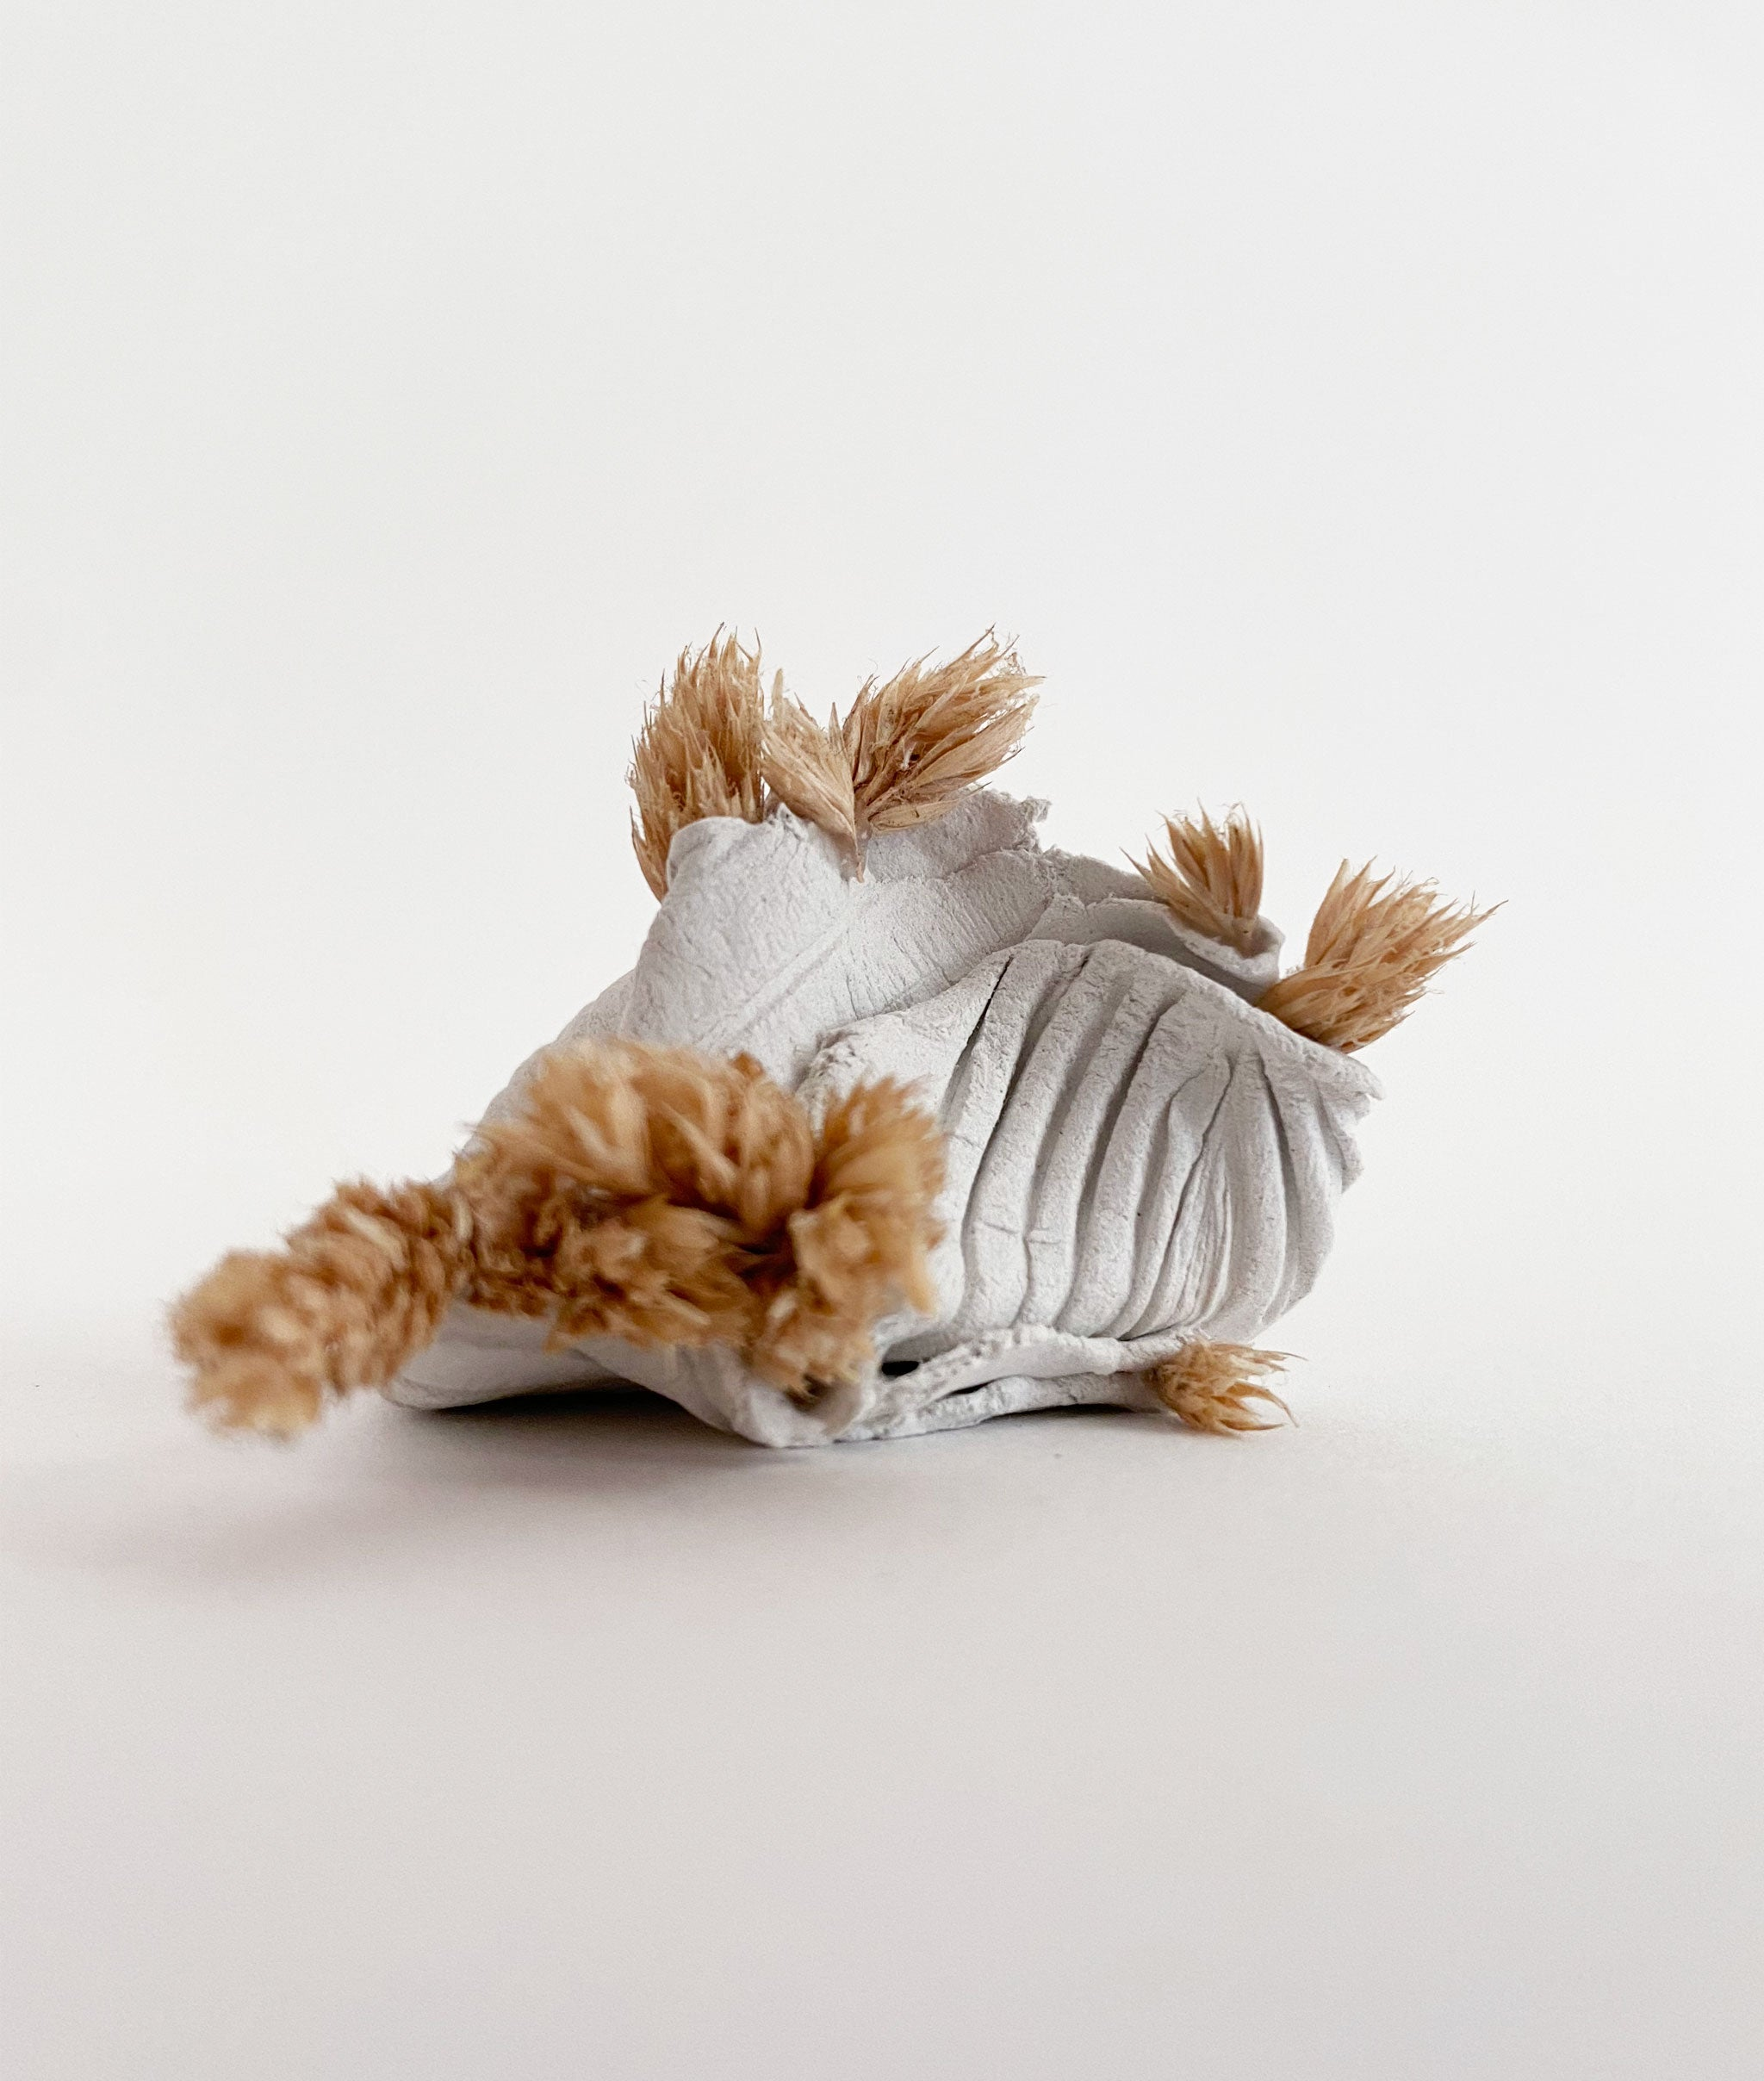 small sculpture created from dried foliage and clay